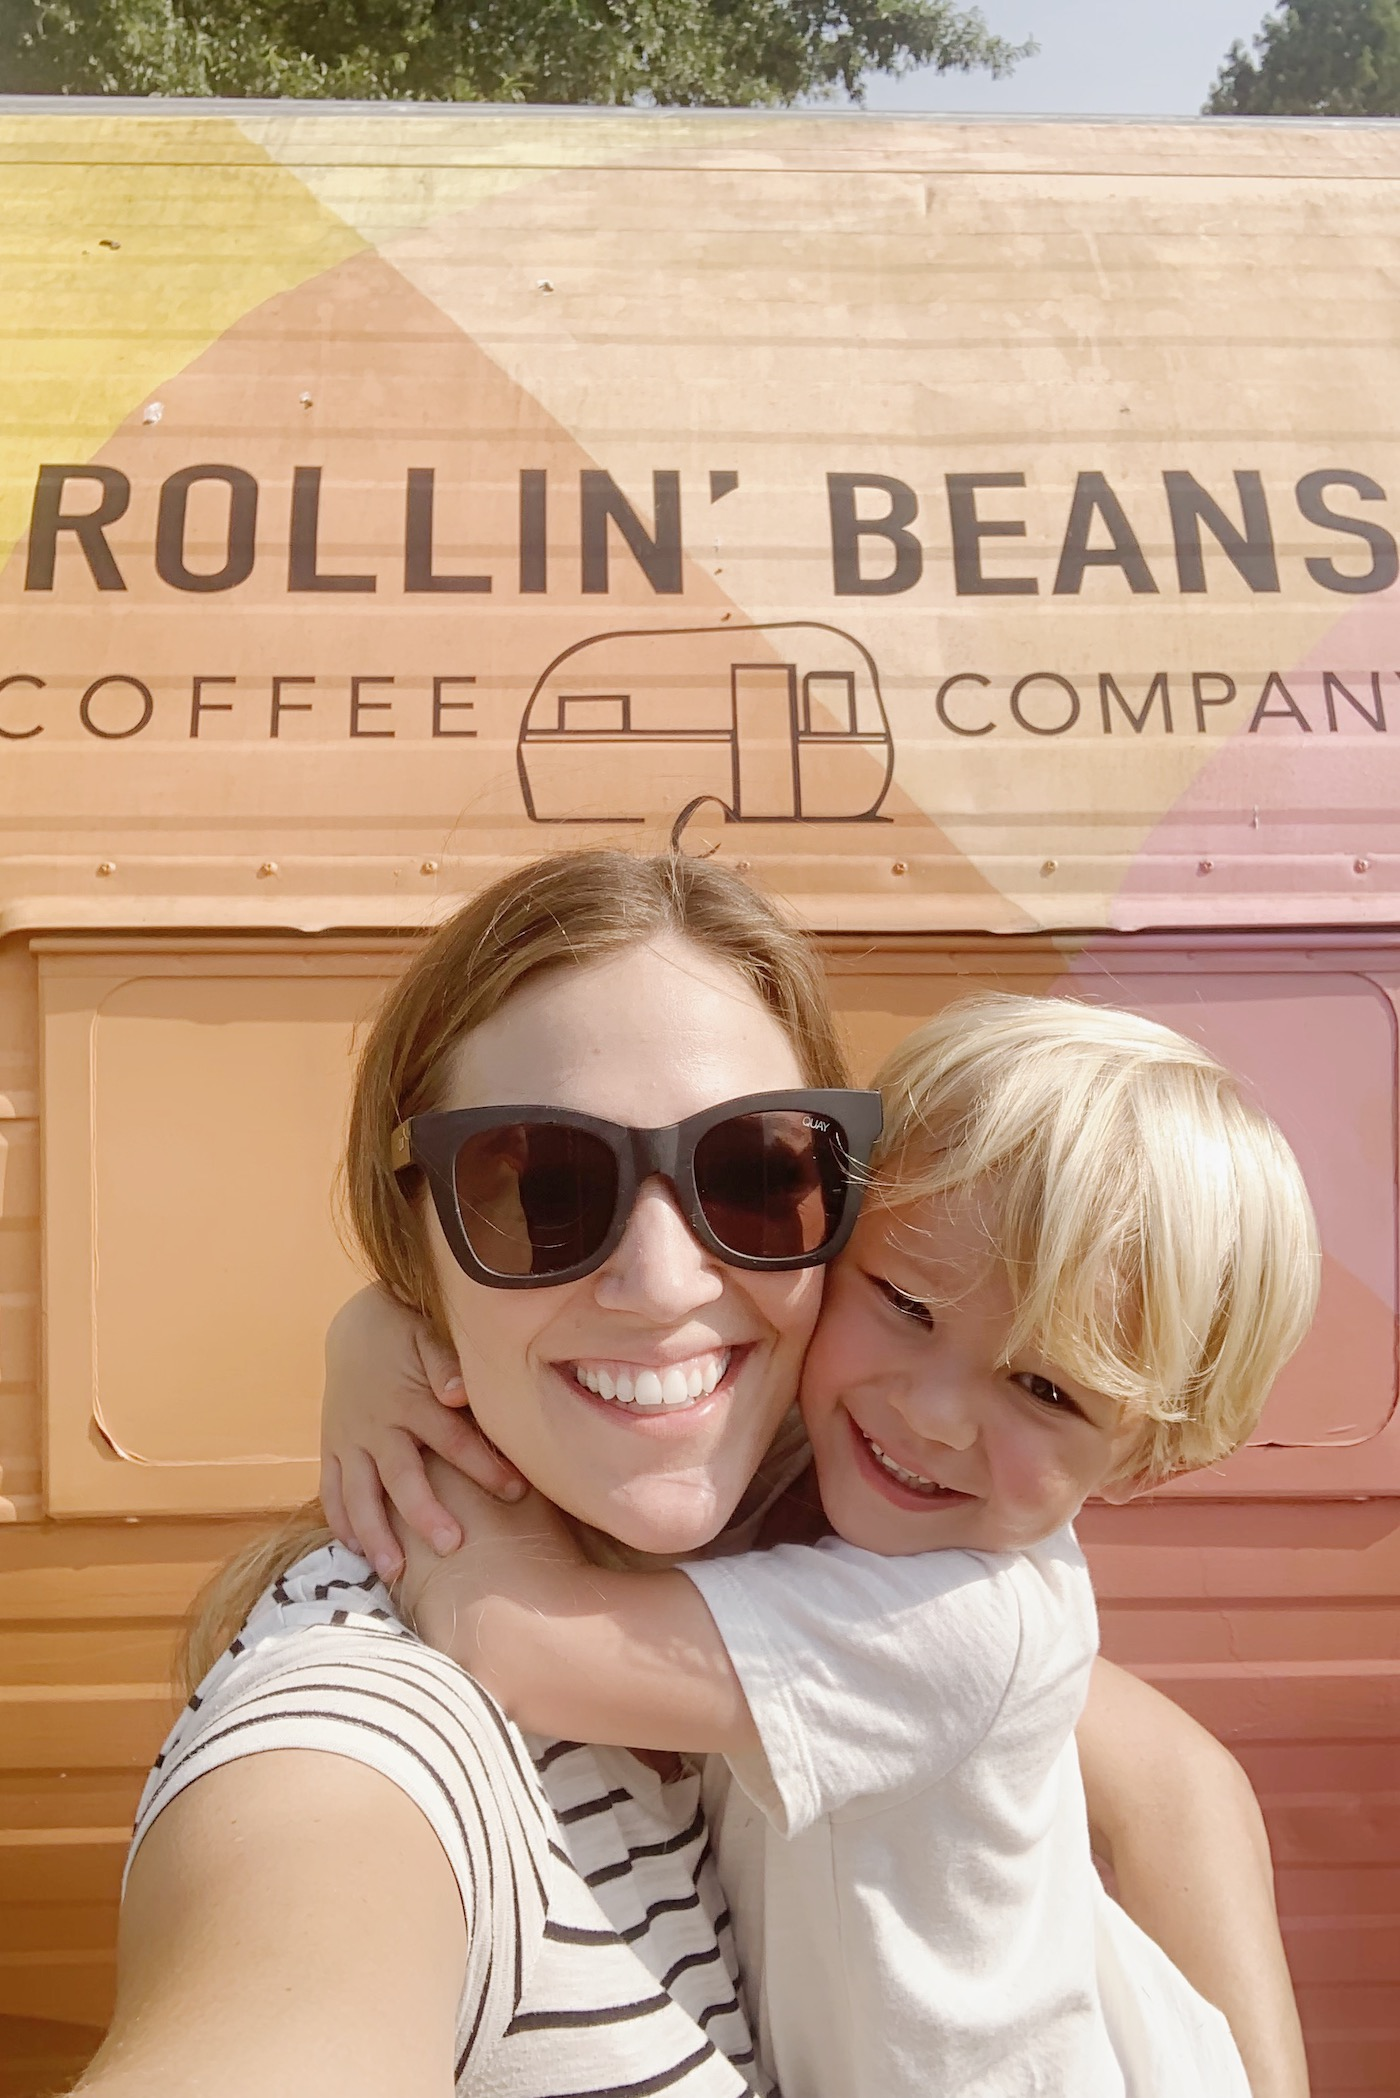 Celebrating National Coffee Day with Rollin' Beans!